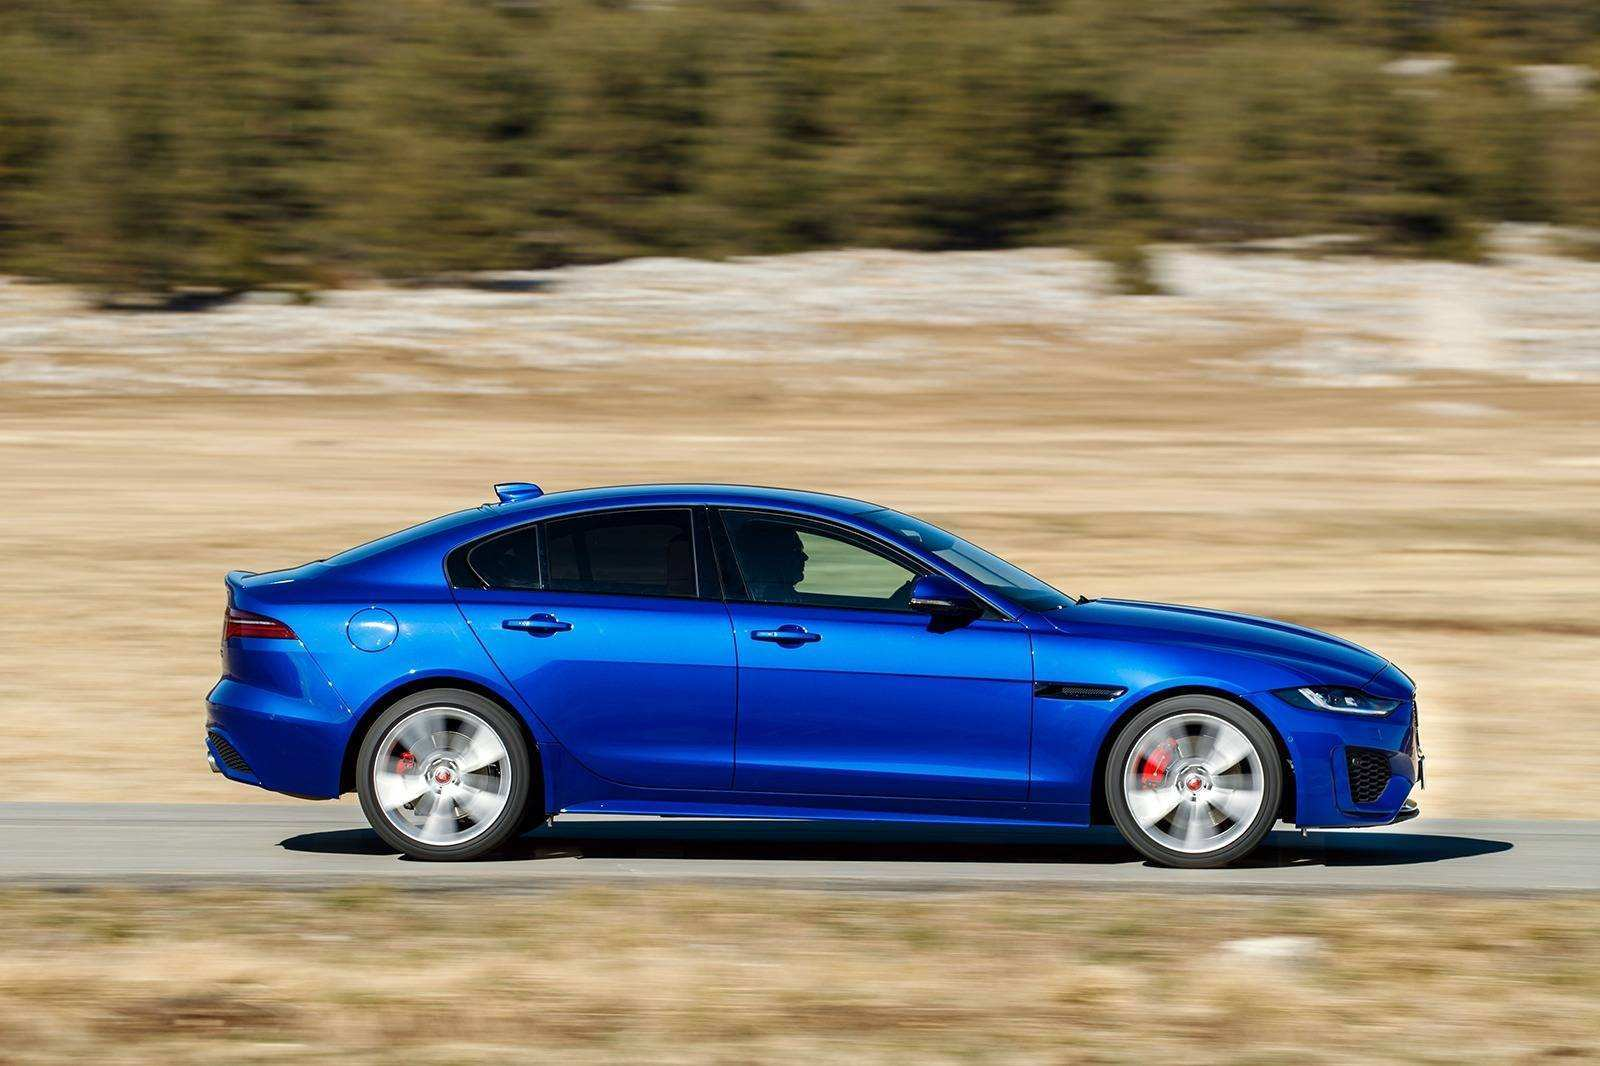 25 All New Jaguar Xe 2020 Launch Price for Jaguar Xe 2020 Launch